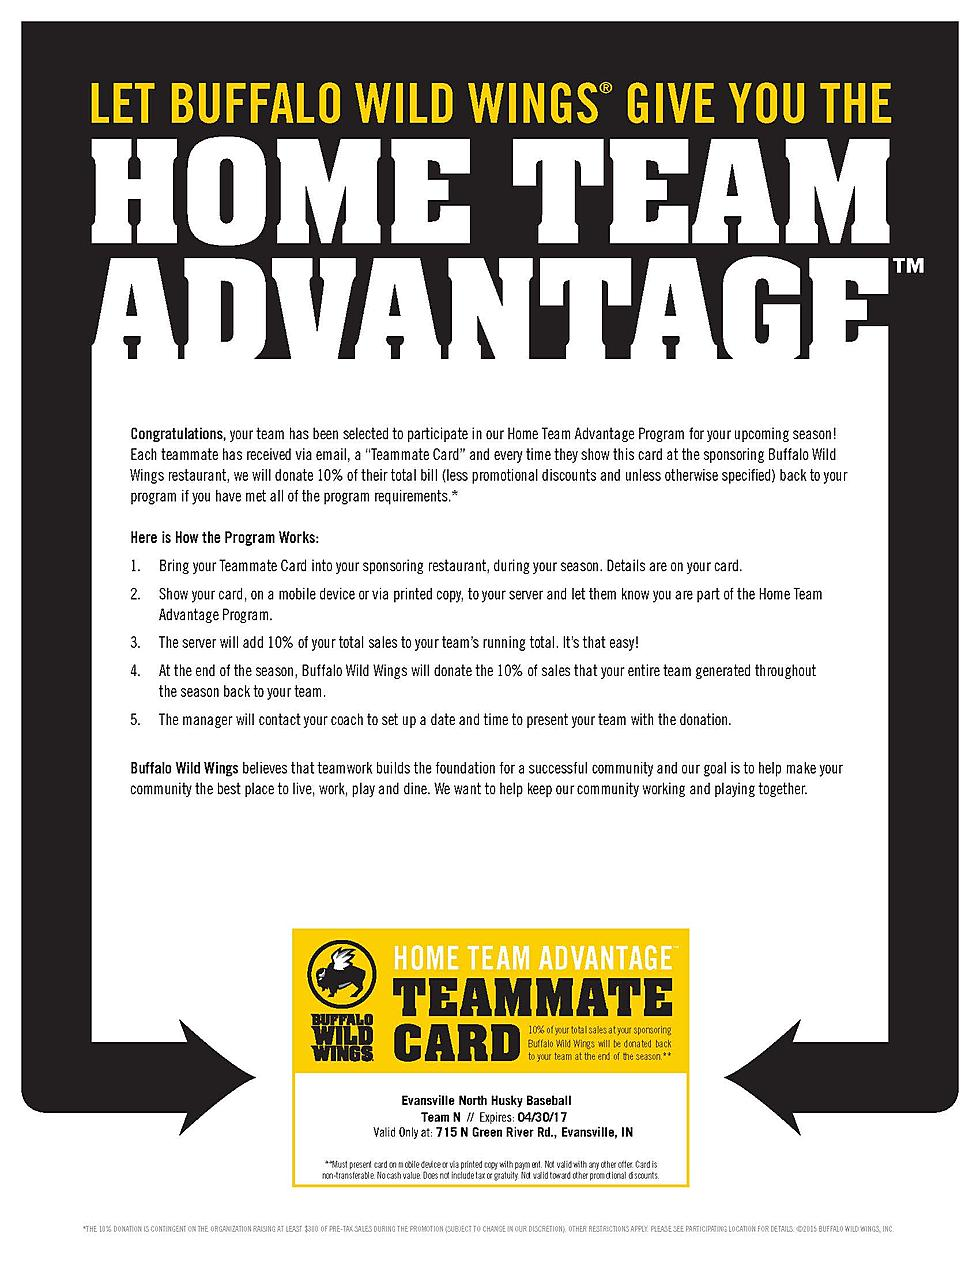 North Baseball Fundraiser Buffalo Wild Wings Green River Rd